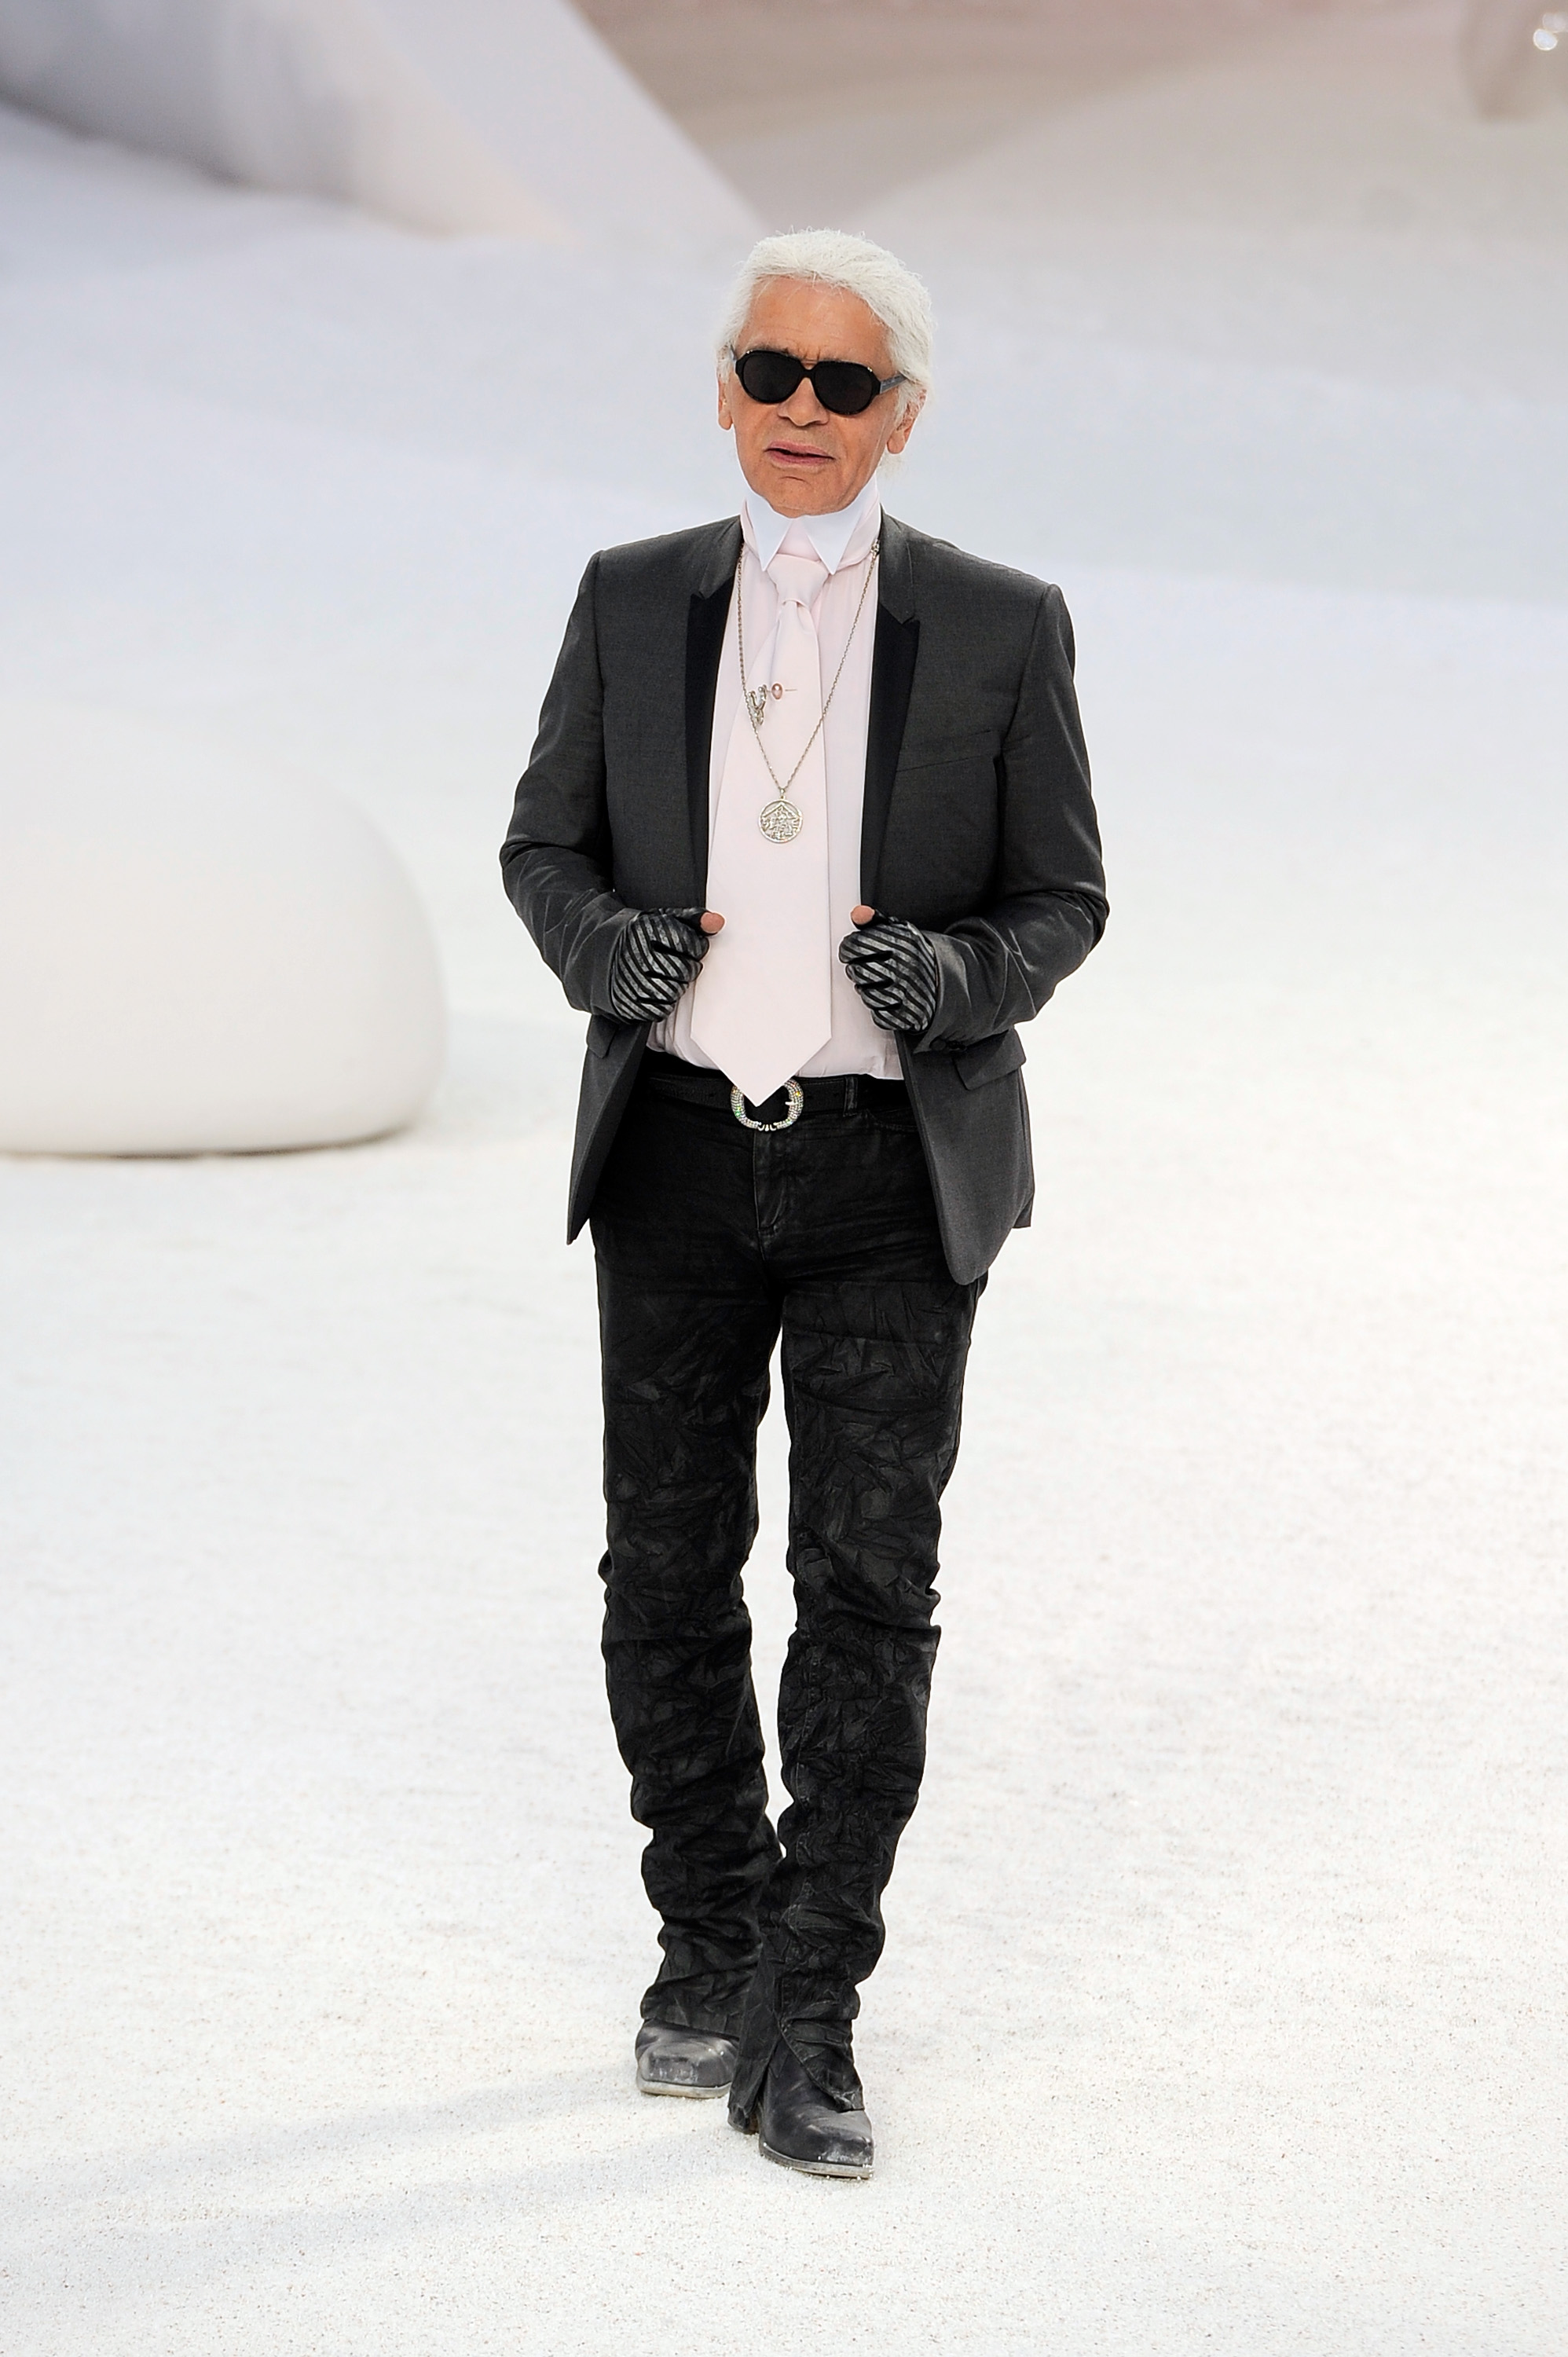 Karl Lagerfeld after Chanel show at Paris Fashion Week.